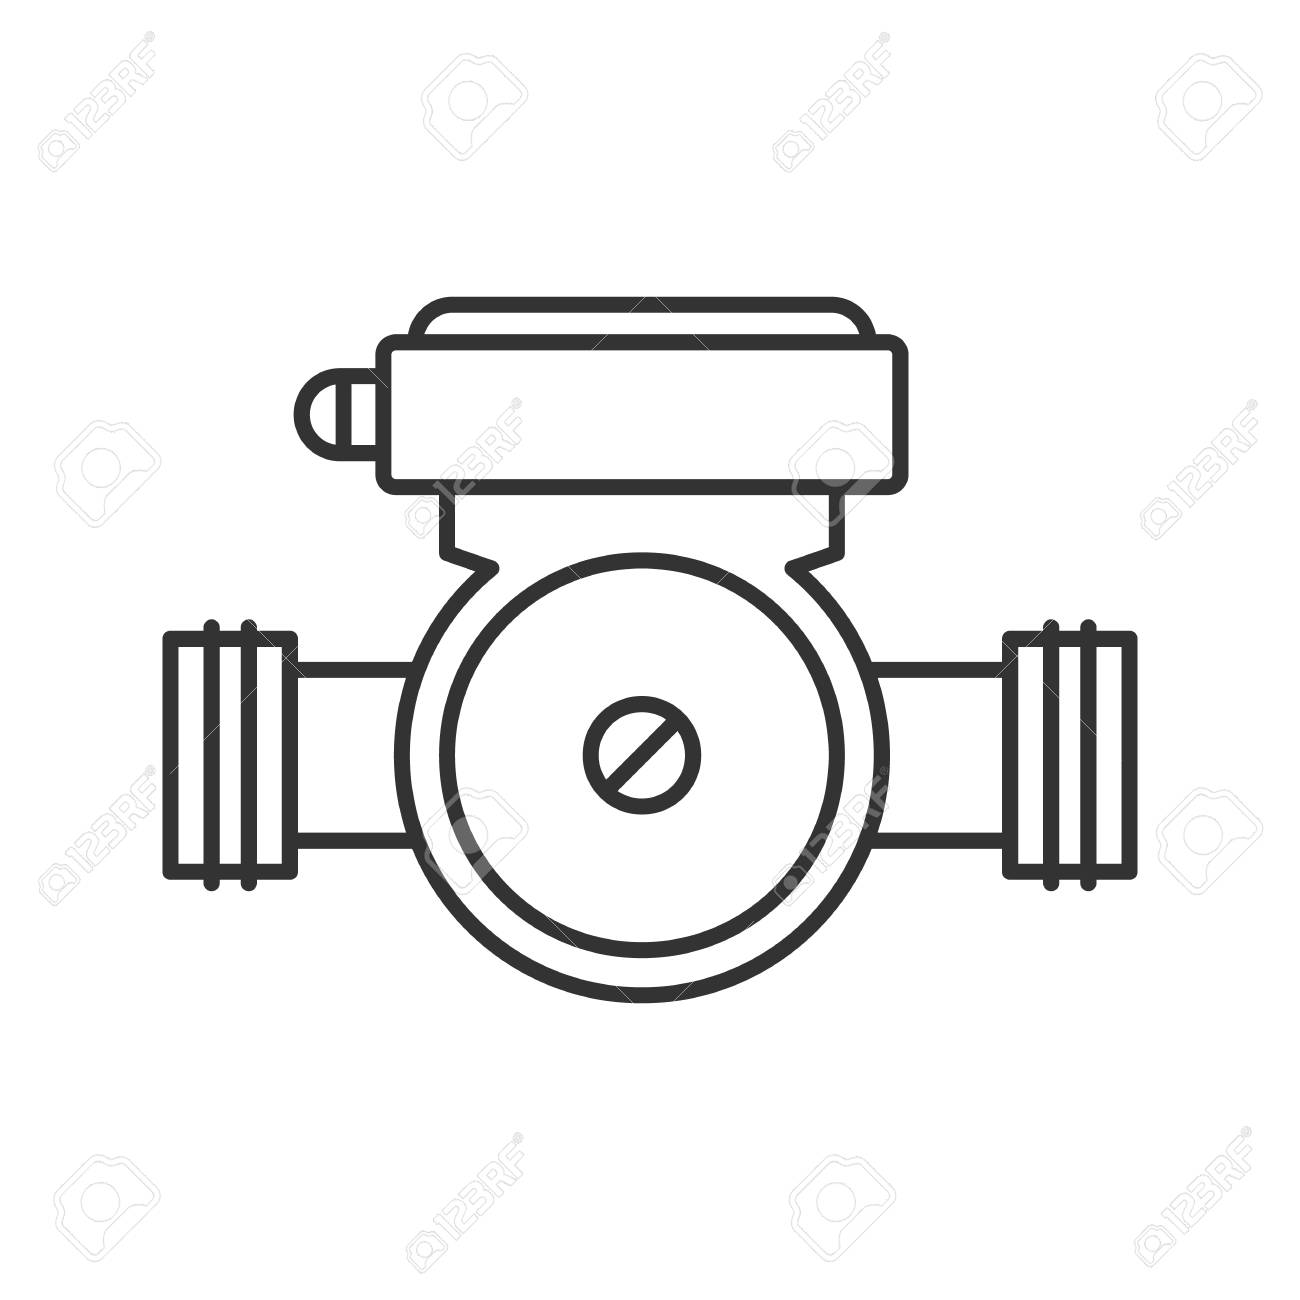 Symbol For Water Pump Franklin Electric Submersible Motor Control Wiring Diagram Linear Icon Thin Line Illustration Of Plumbing Contour